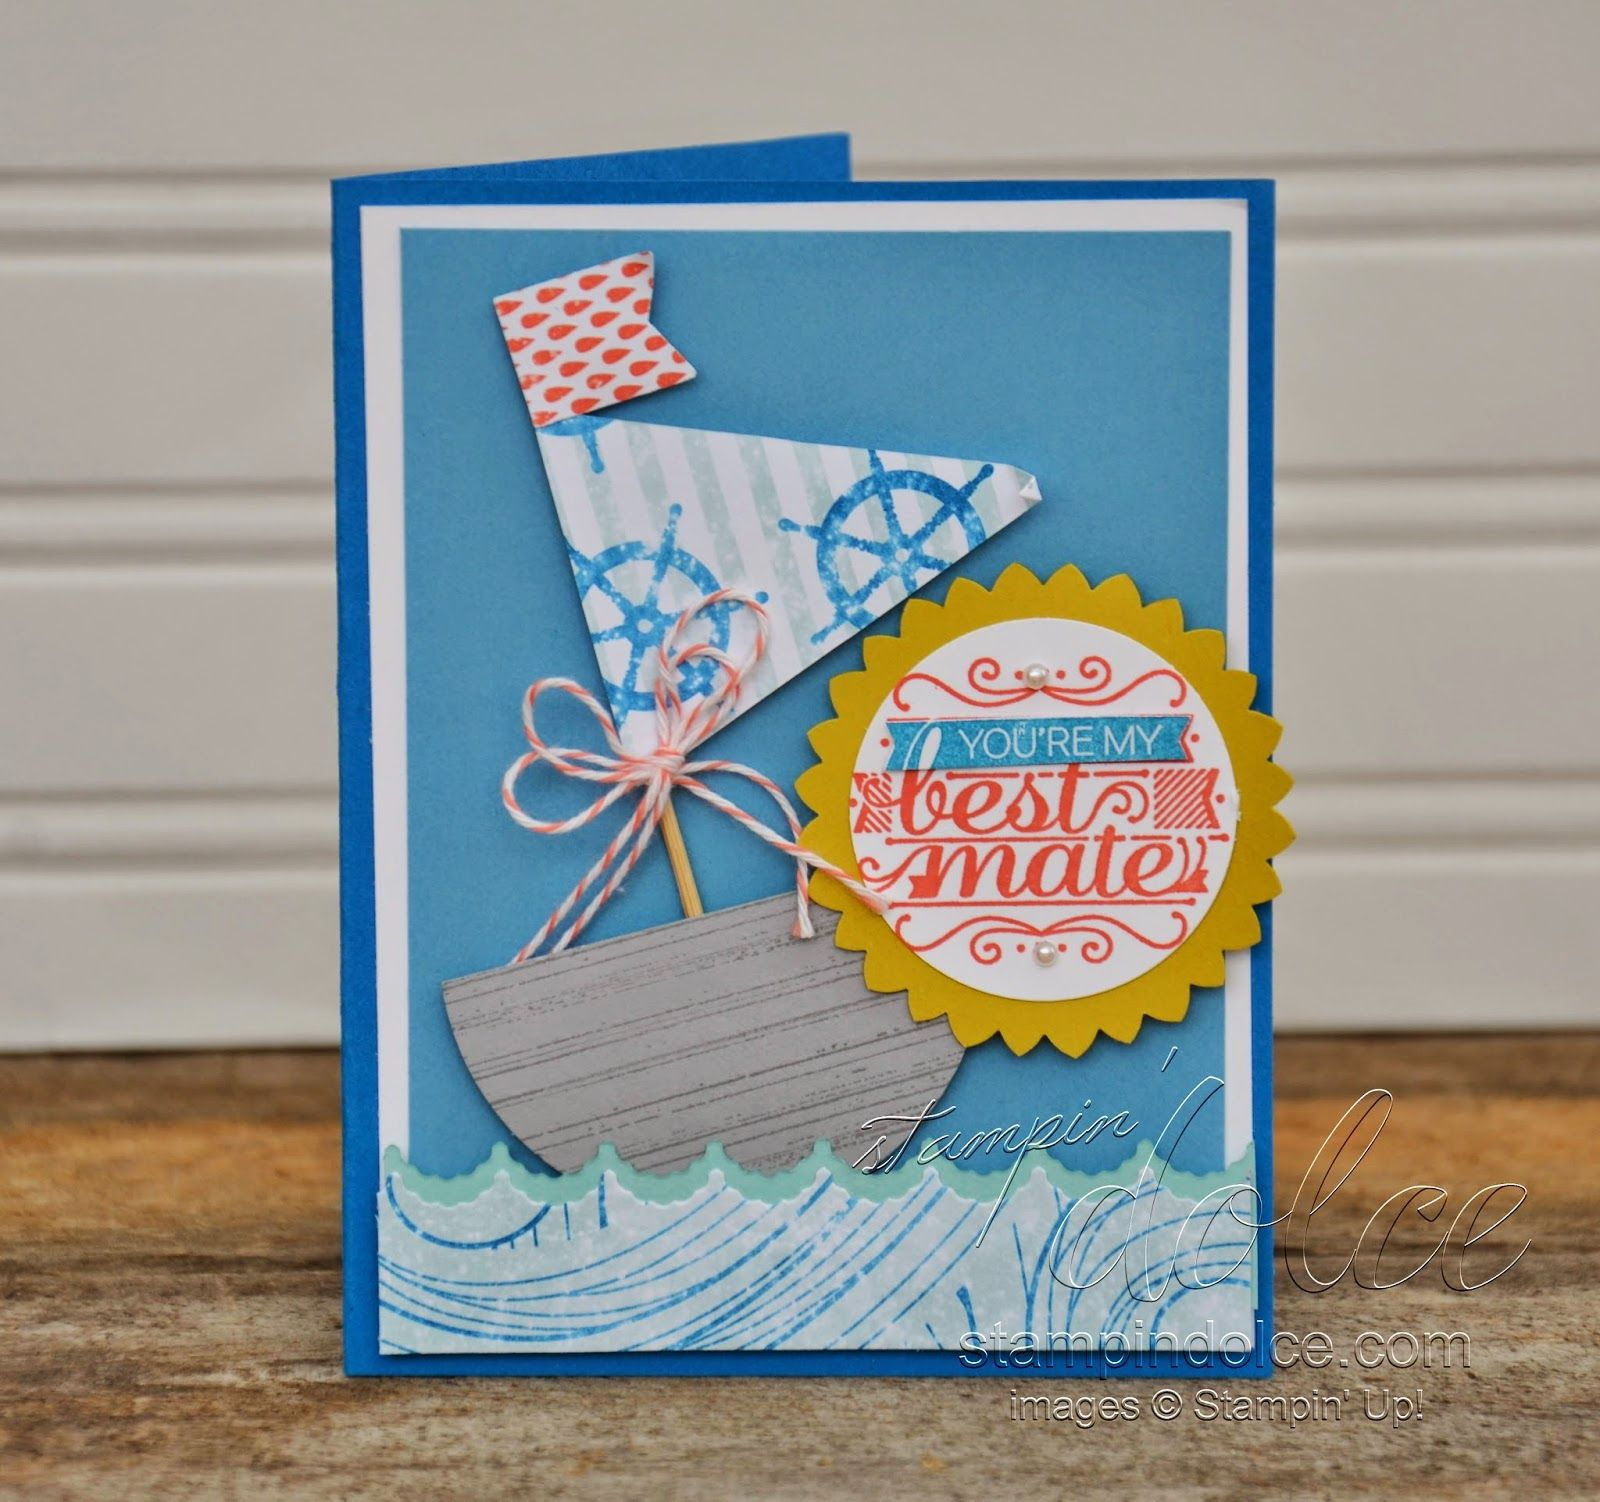 Stampin' Dolce: nautical theme scrapbook layout & cards using Stampin' Up!'s High Tide DSP and Hello, Sailor